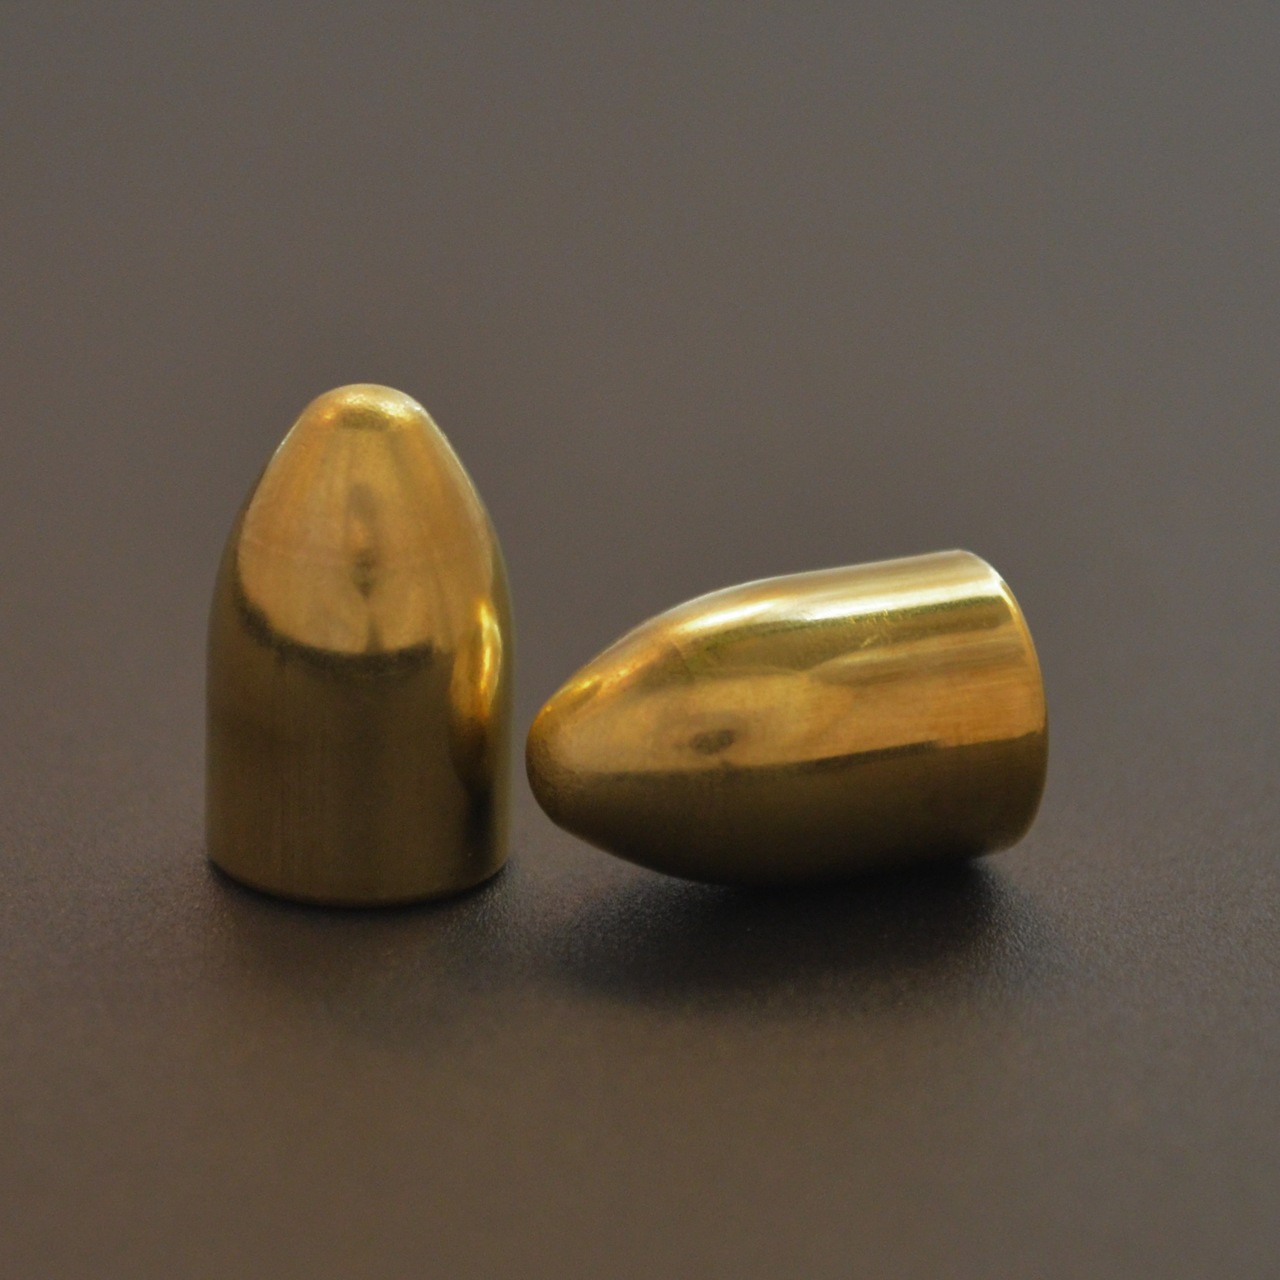 9mm/115gr CMJ - 4,000ct CASE